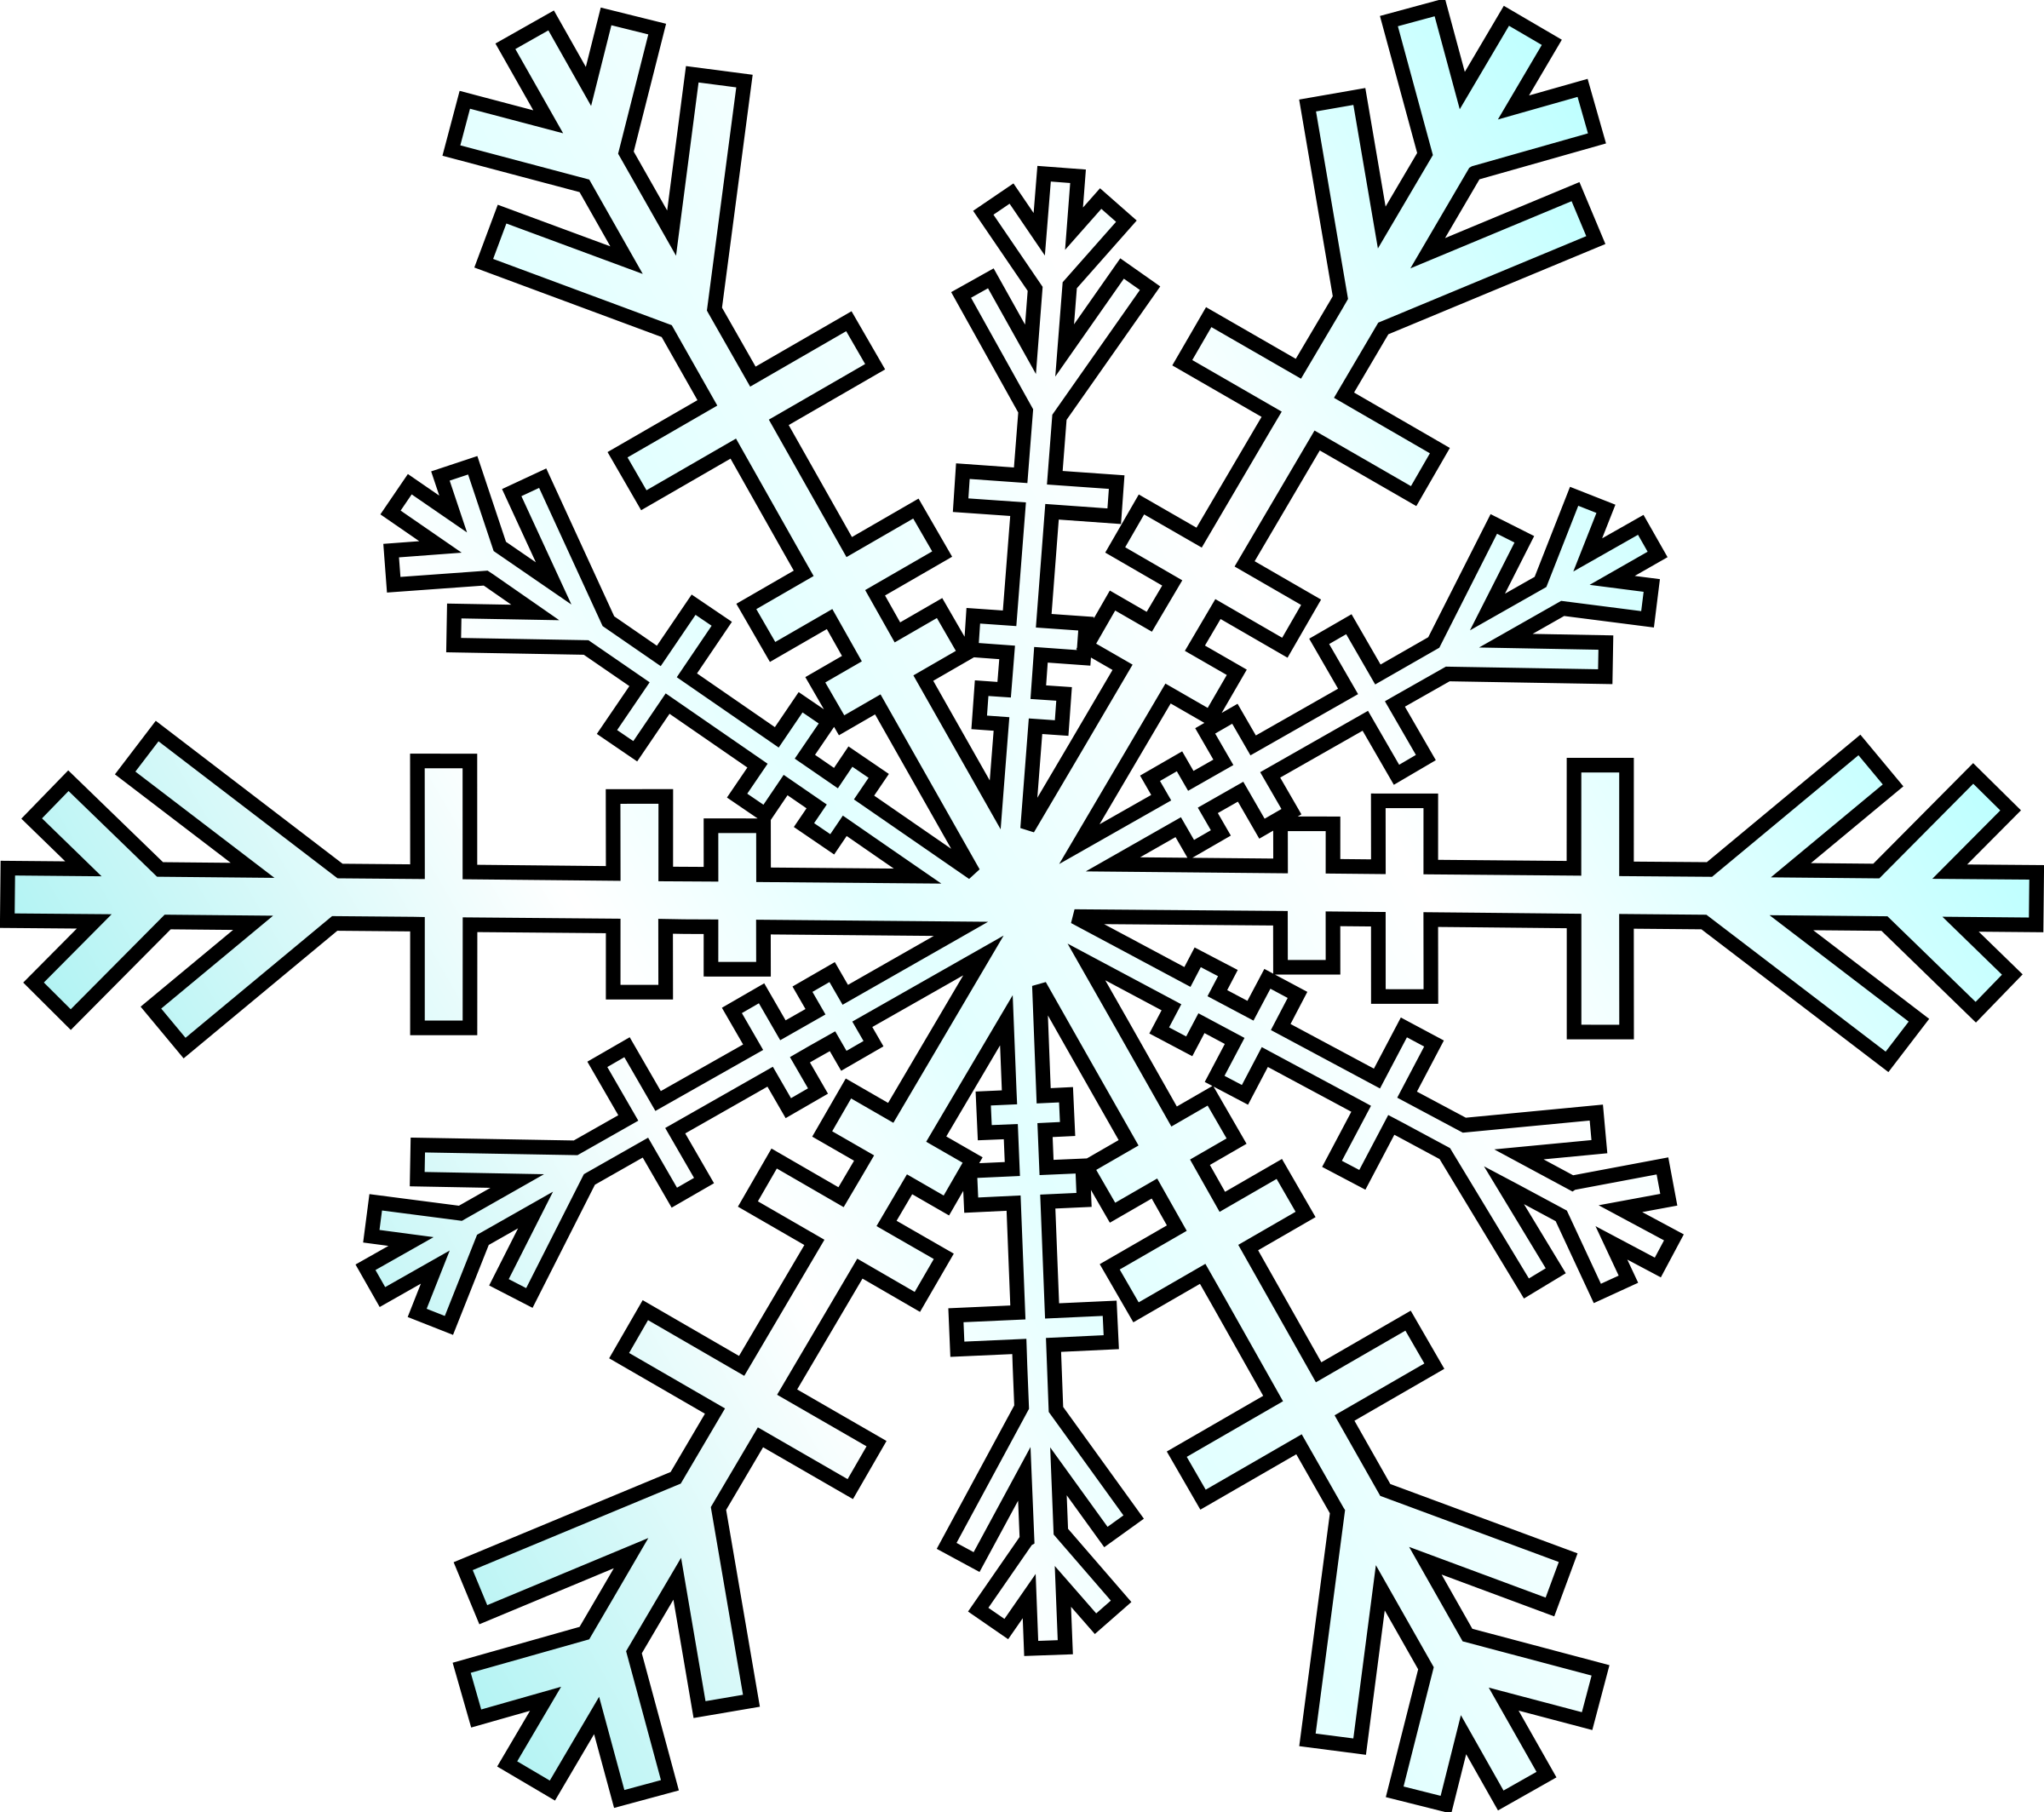 Fancy snowflake clipart graphic library stock Snowflake Clipart Png | Free download best Snowflake Clipart Png on ... graphic library stock